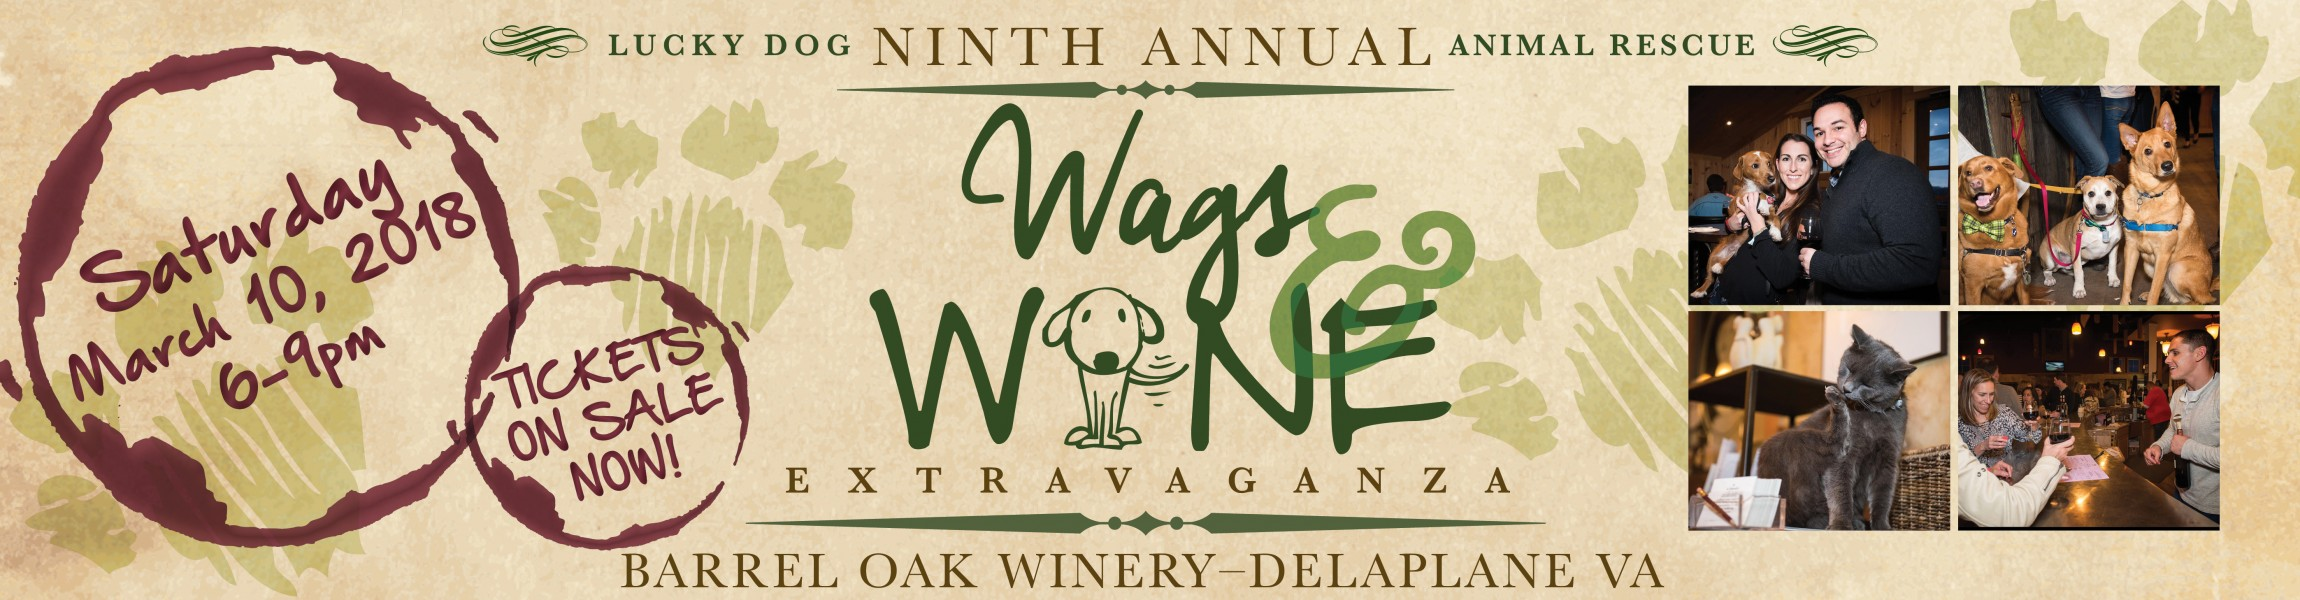 Lucky Dog Animal Rescue's 9th Annual Wags & Wine